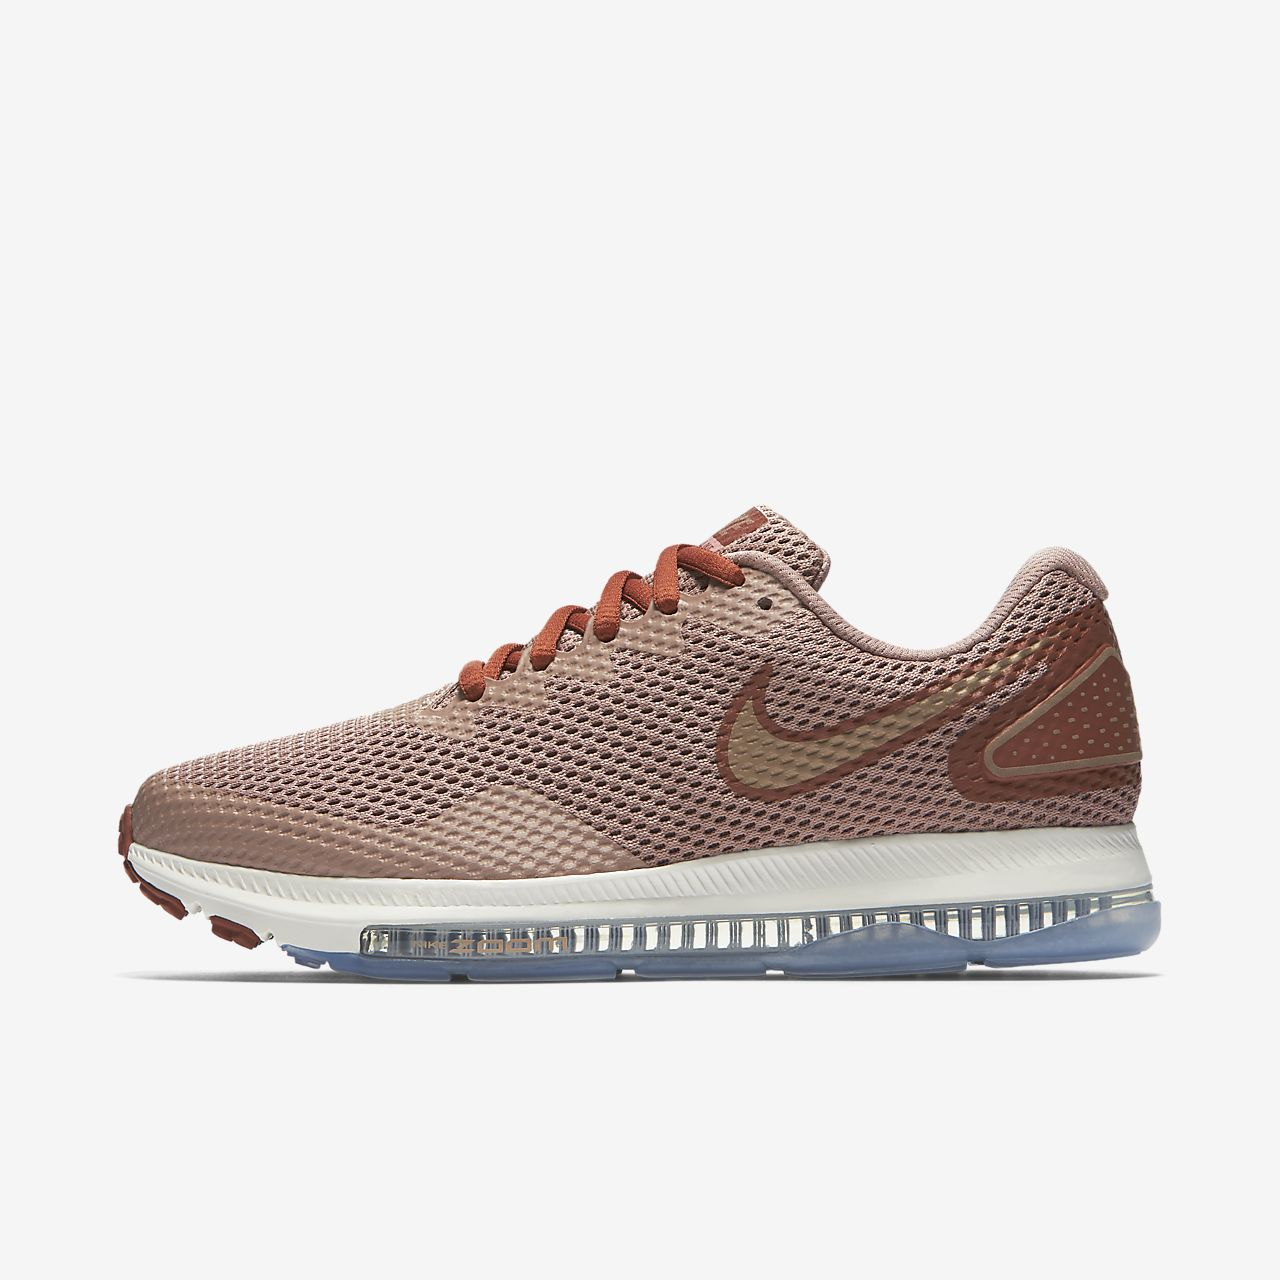 Nike Zoom All Comfortable Out Low 2 Running Dusty Peach/Metallic Red Bronze AJ0036 200